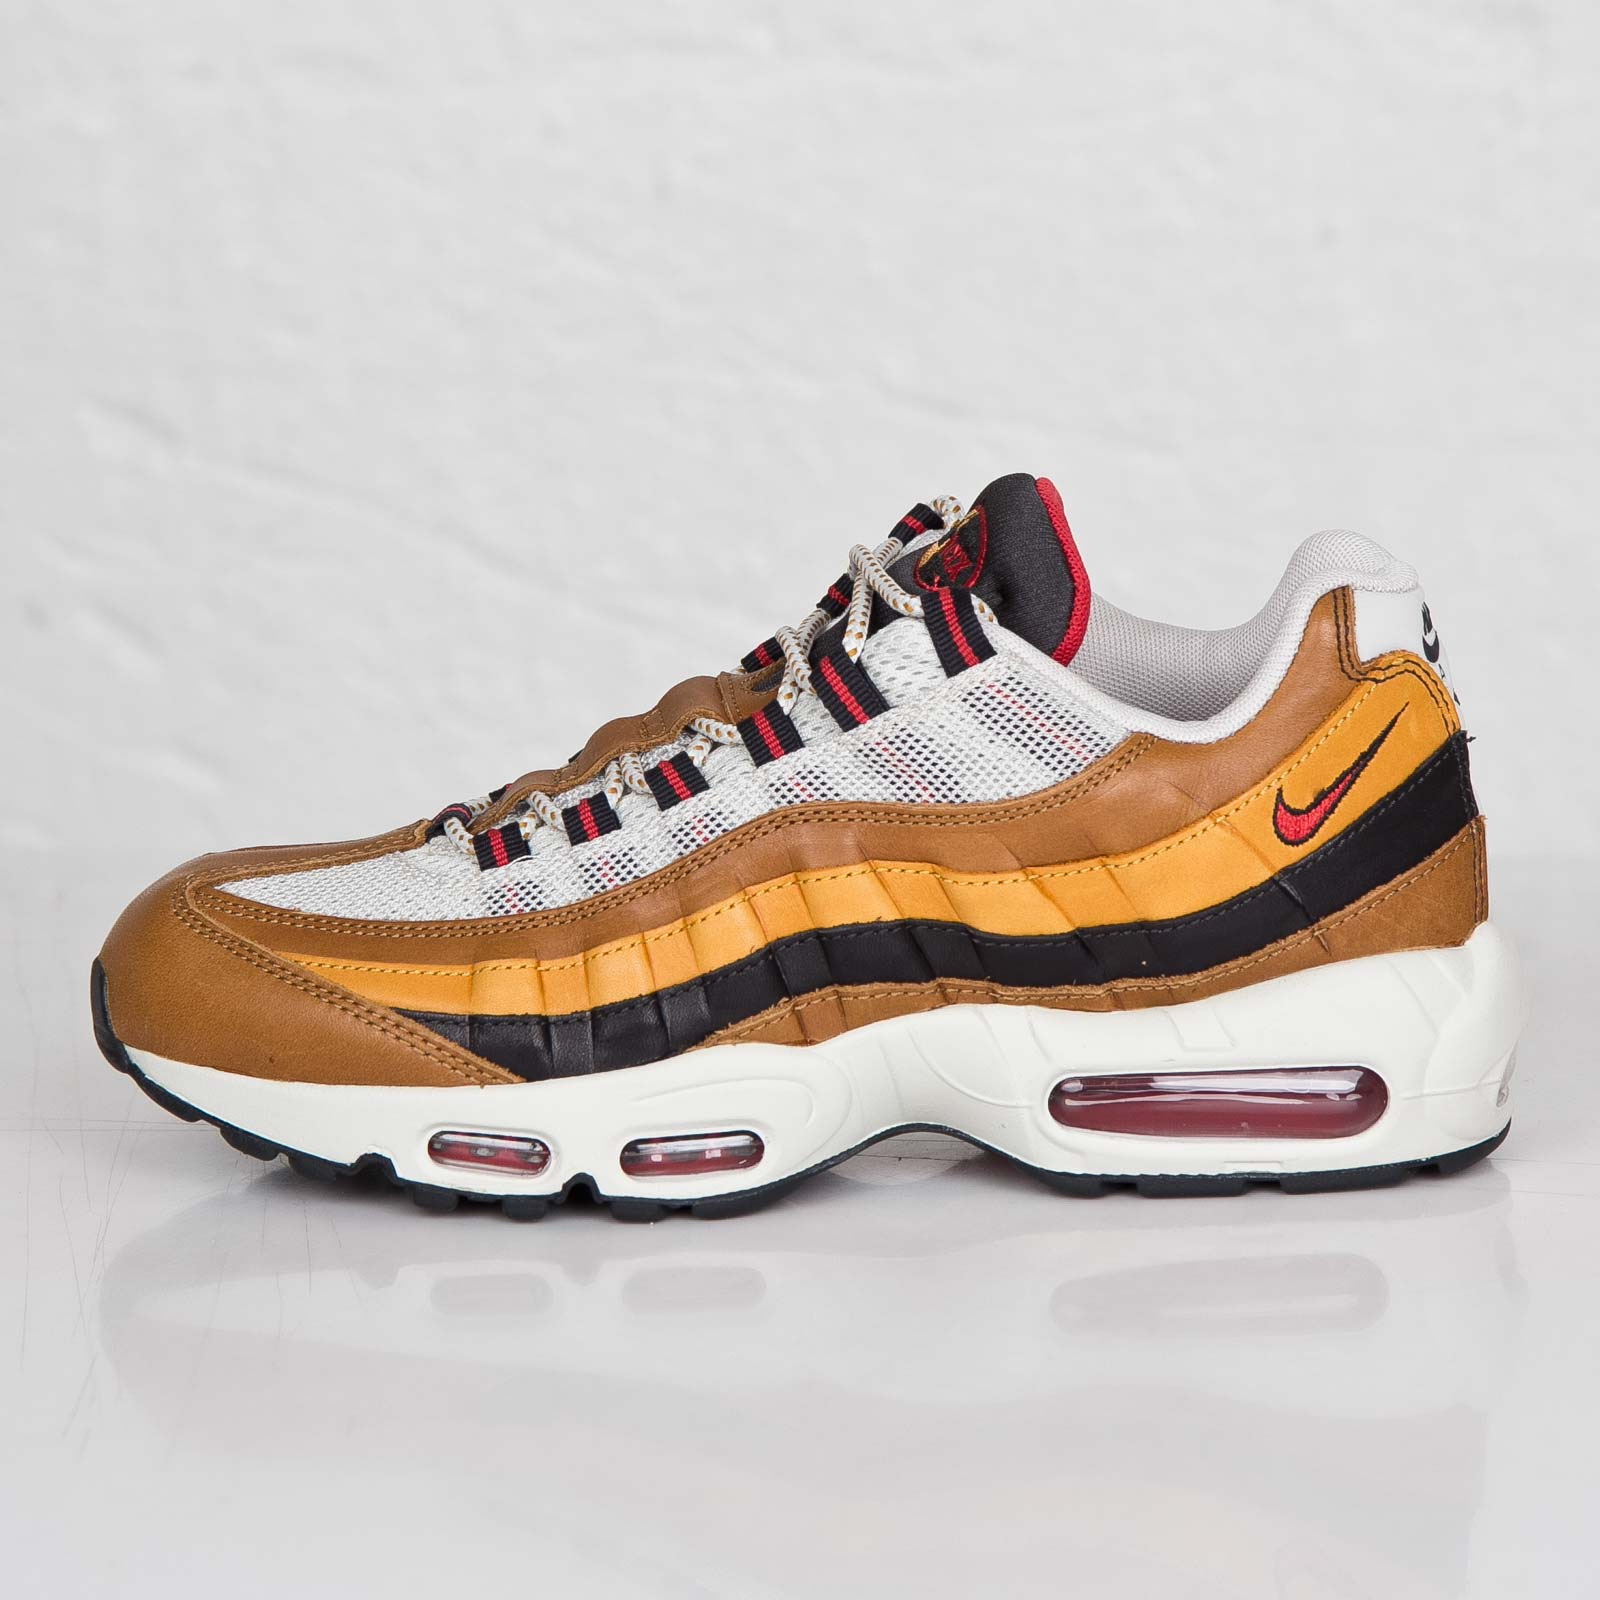 save off cef8b f43e6 Nike Air Max 95 Escape QS - 718731-200 - Sneakersnstuff   sneakers    streetwear online since 1999